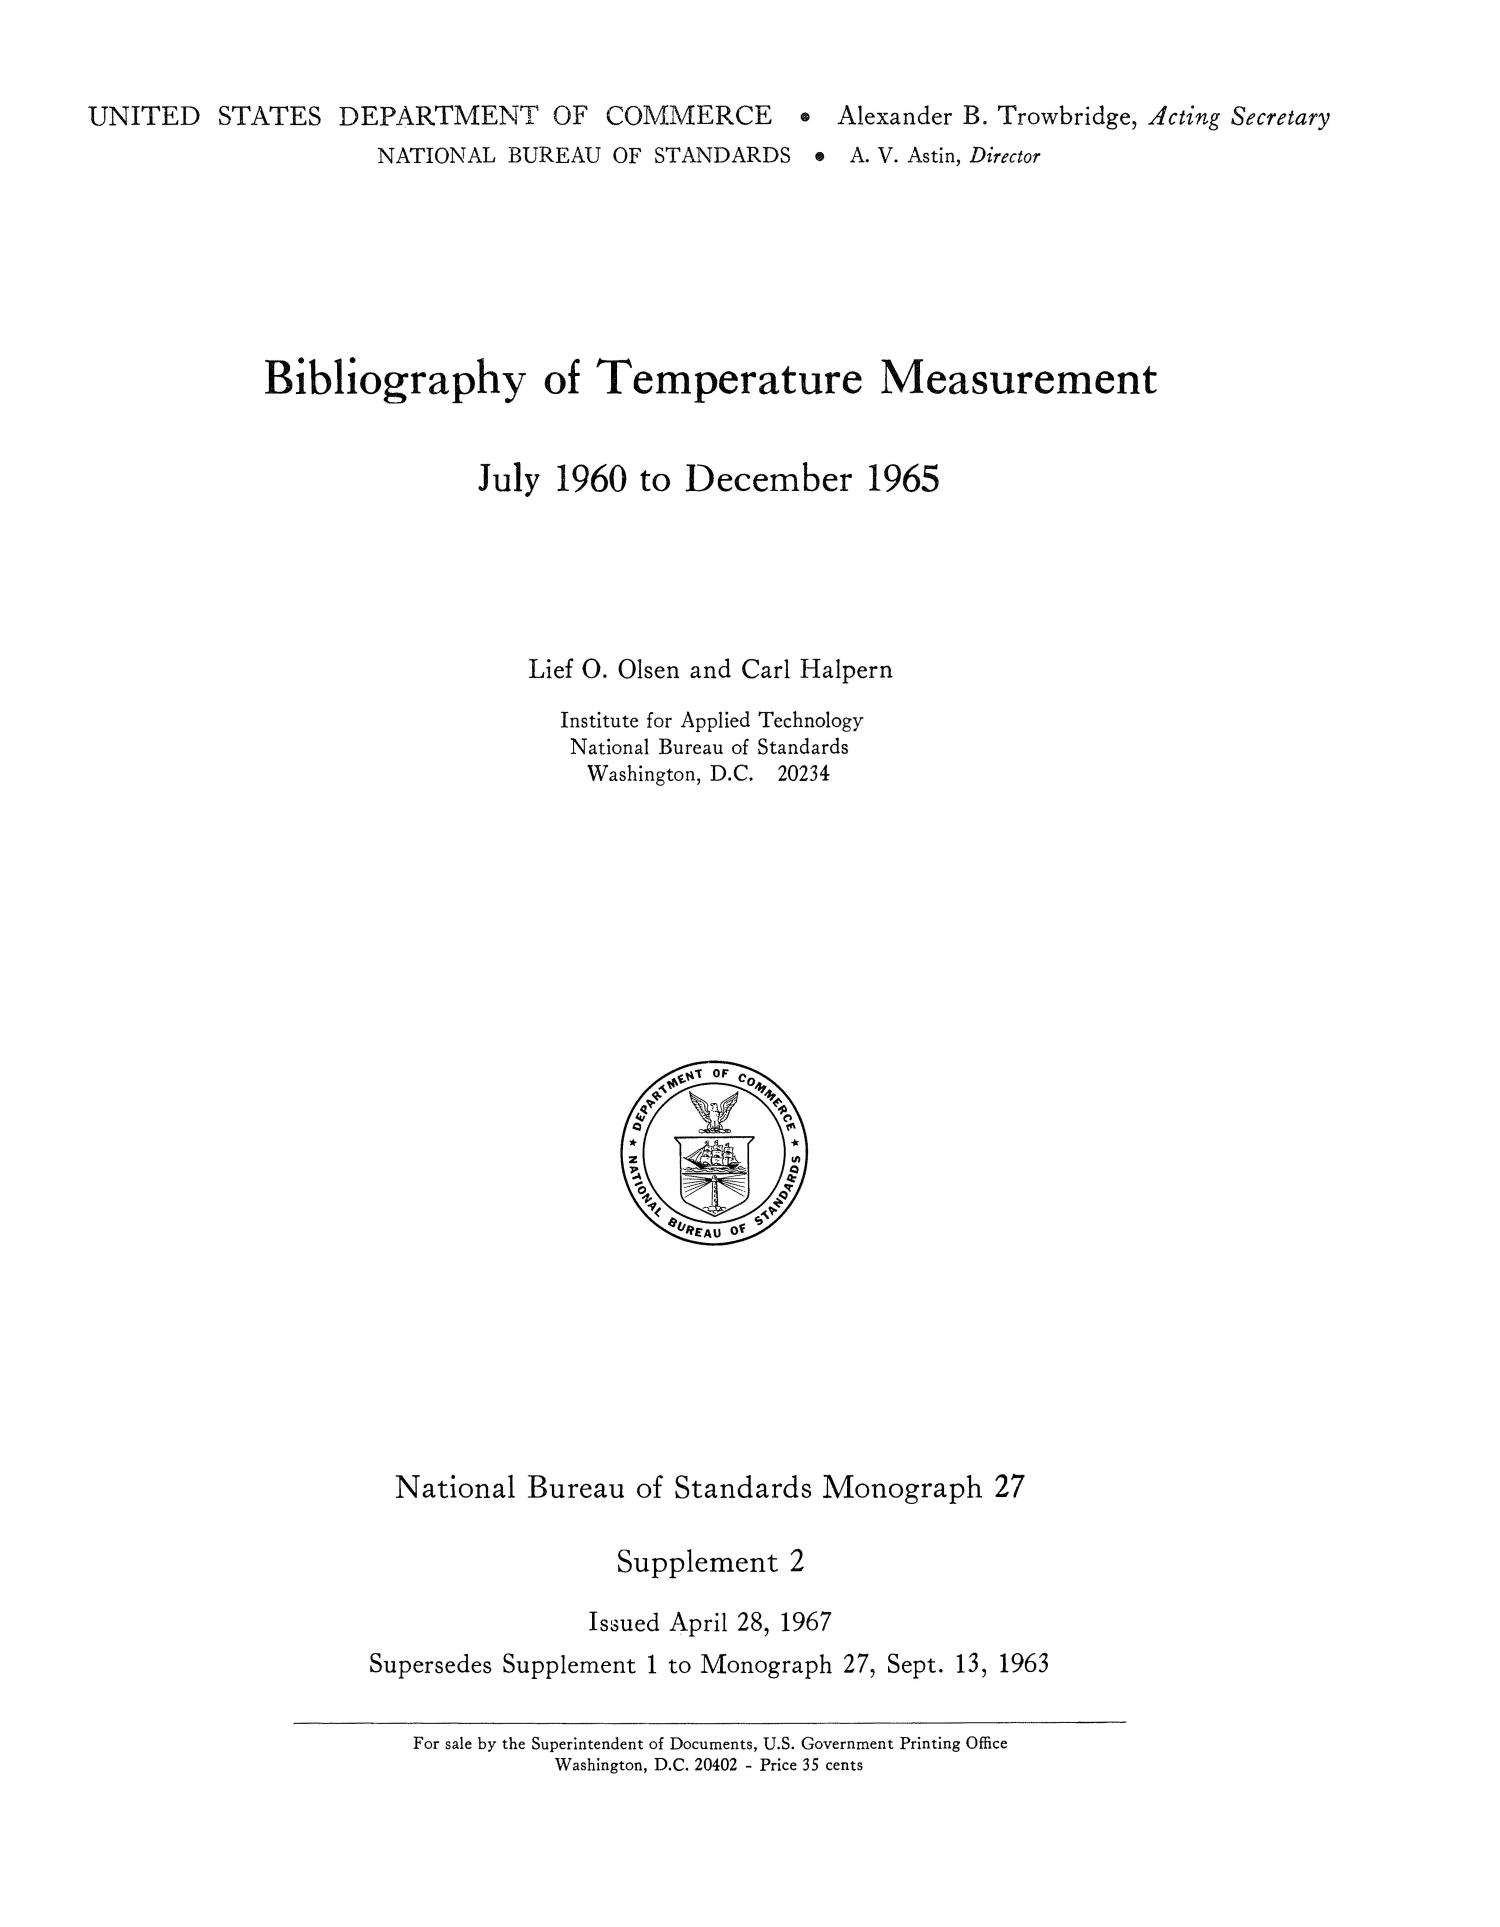 Bibliography of Temperature Measurement: July 1960 to December 1965                                                                                                      Title Page